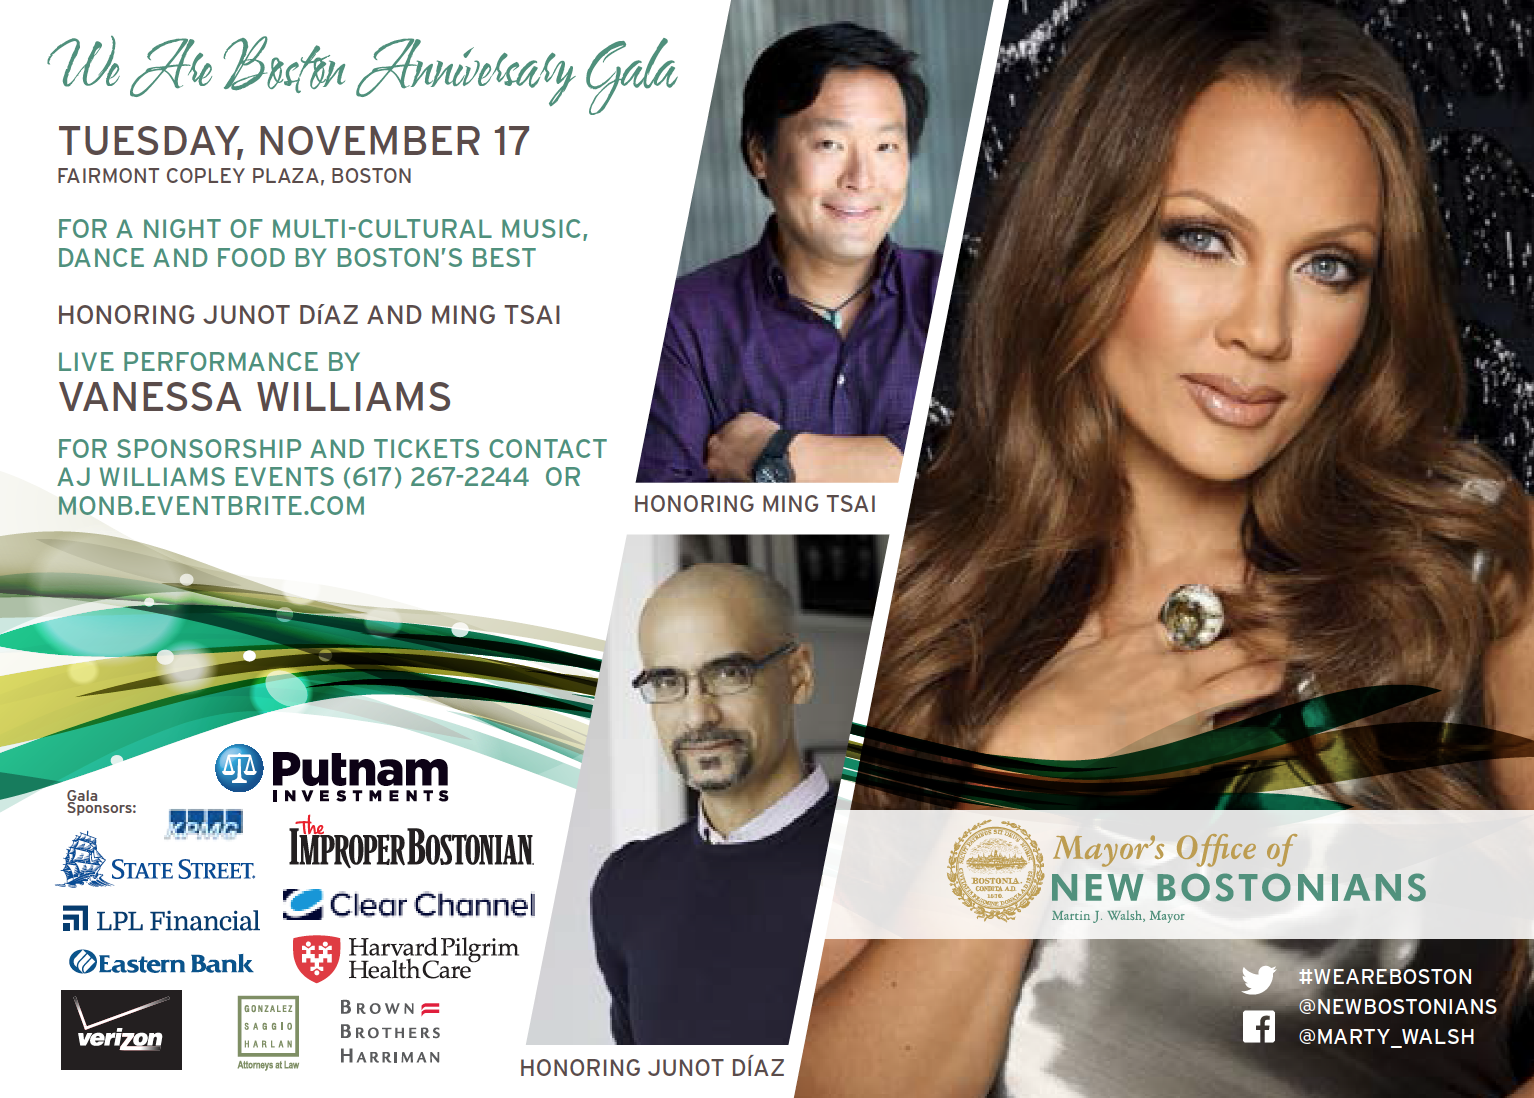 We Are Boston Gala 2015 Ticket Information